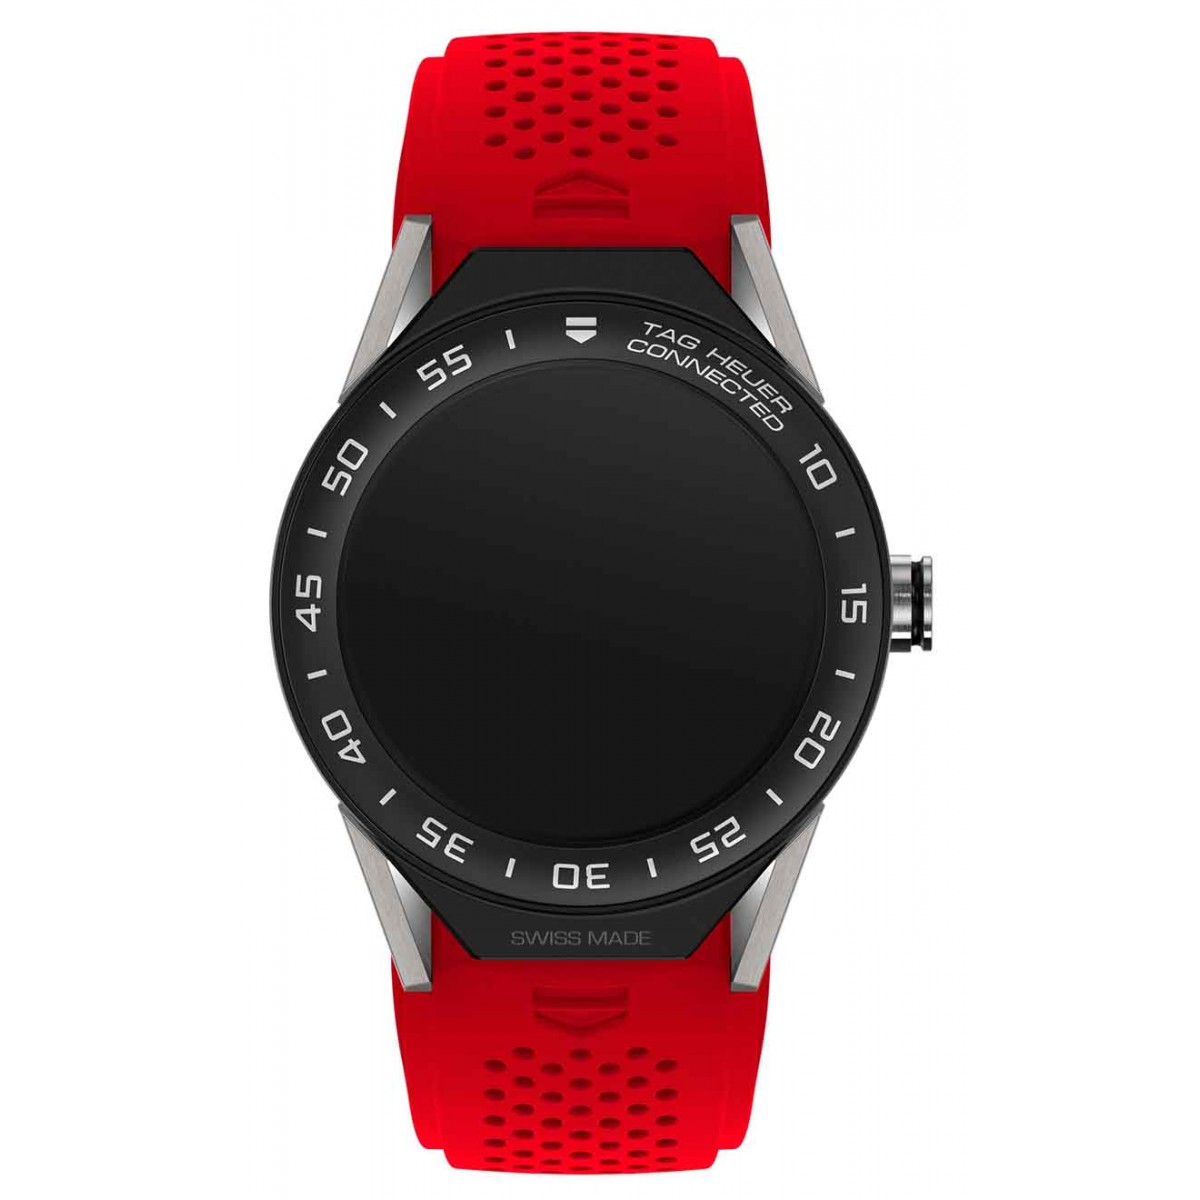 TAG HEUER CONNECTED MODULAR 45 50 M - ∅45 mm Red rubber with Black Mat Ceramic Bezel, titanium lugs